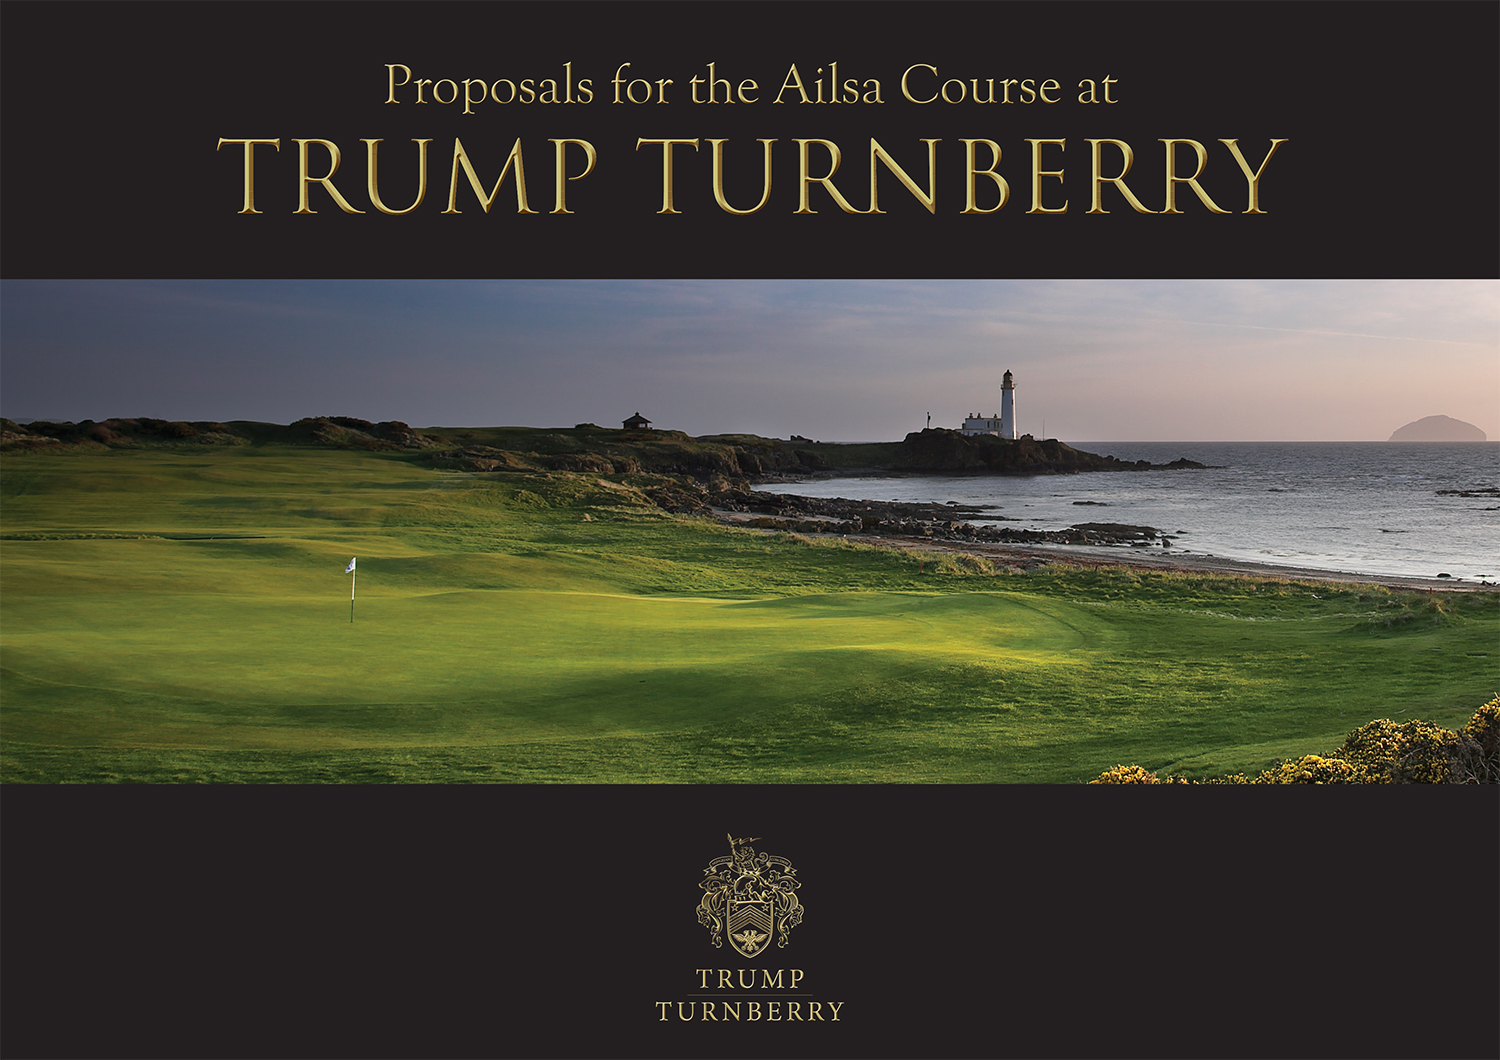 Ailsa Course at Trump Turnberry